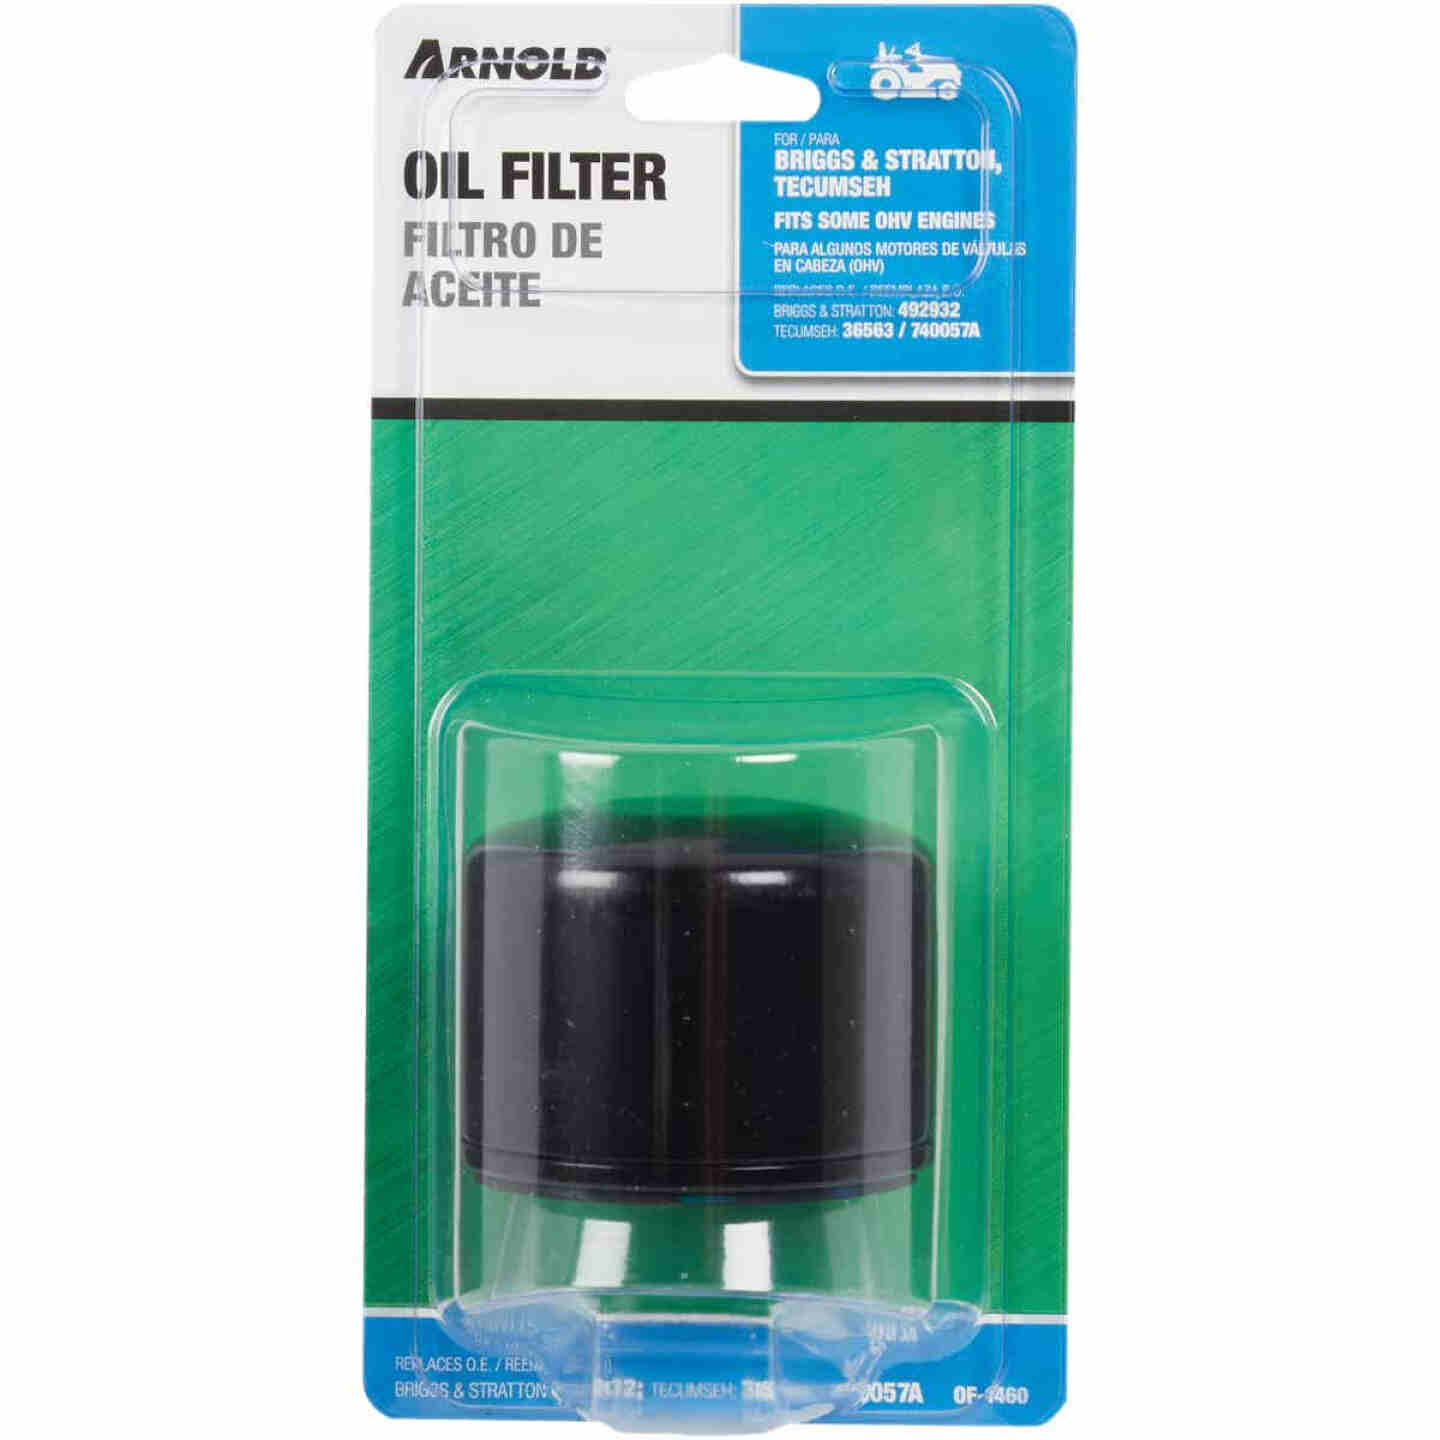 Arnold Oil Filter for Briggs & Stratton and Tecumseh OHV Engines Image 2